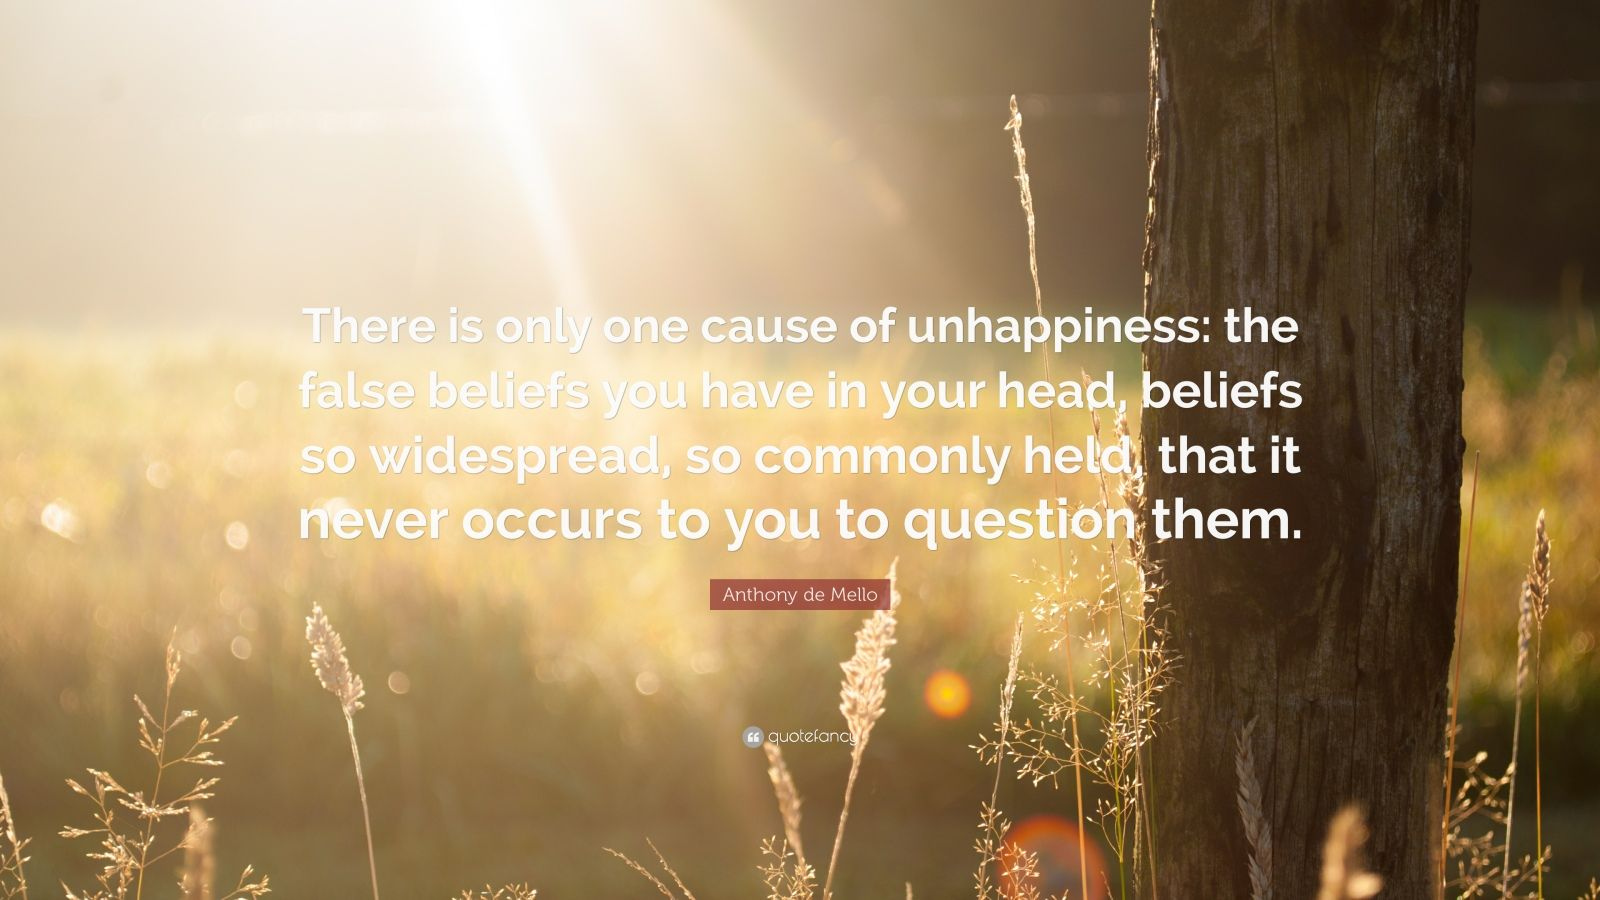 the cause of unhappiness in life is greed Here are osho quotes on meditation, happiness, mind, life,  best of 300+ osho quotes on meditation, happiness, mind,  all the ways that you cause unhappiness.